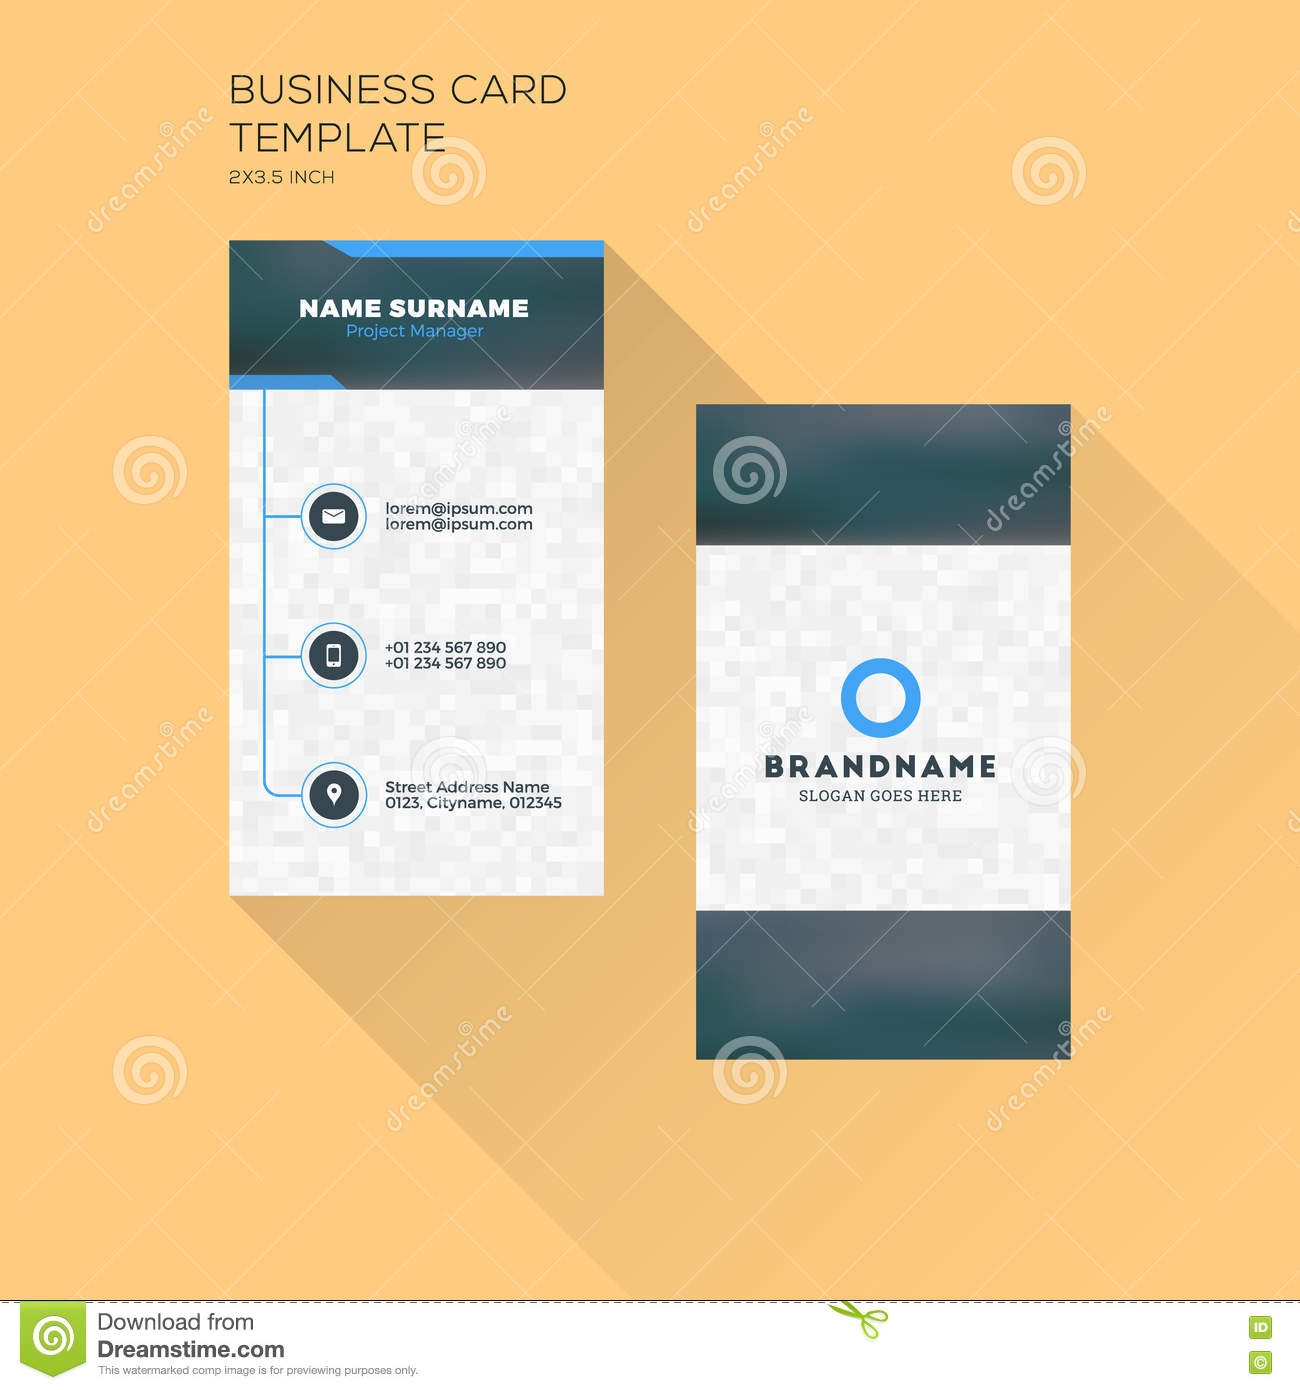 Vertical business card print template personal business card wi vertical business card print template personal business card wi fbccfo Gallery